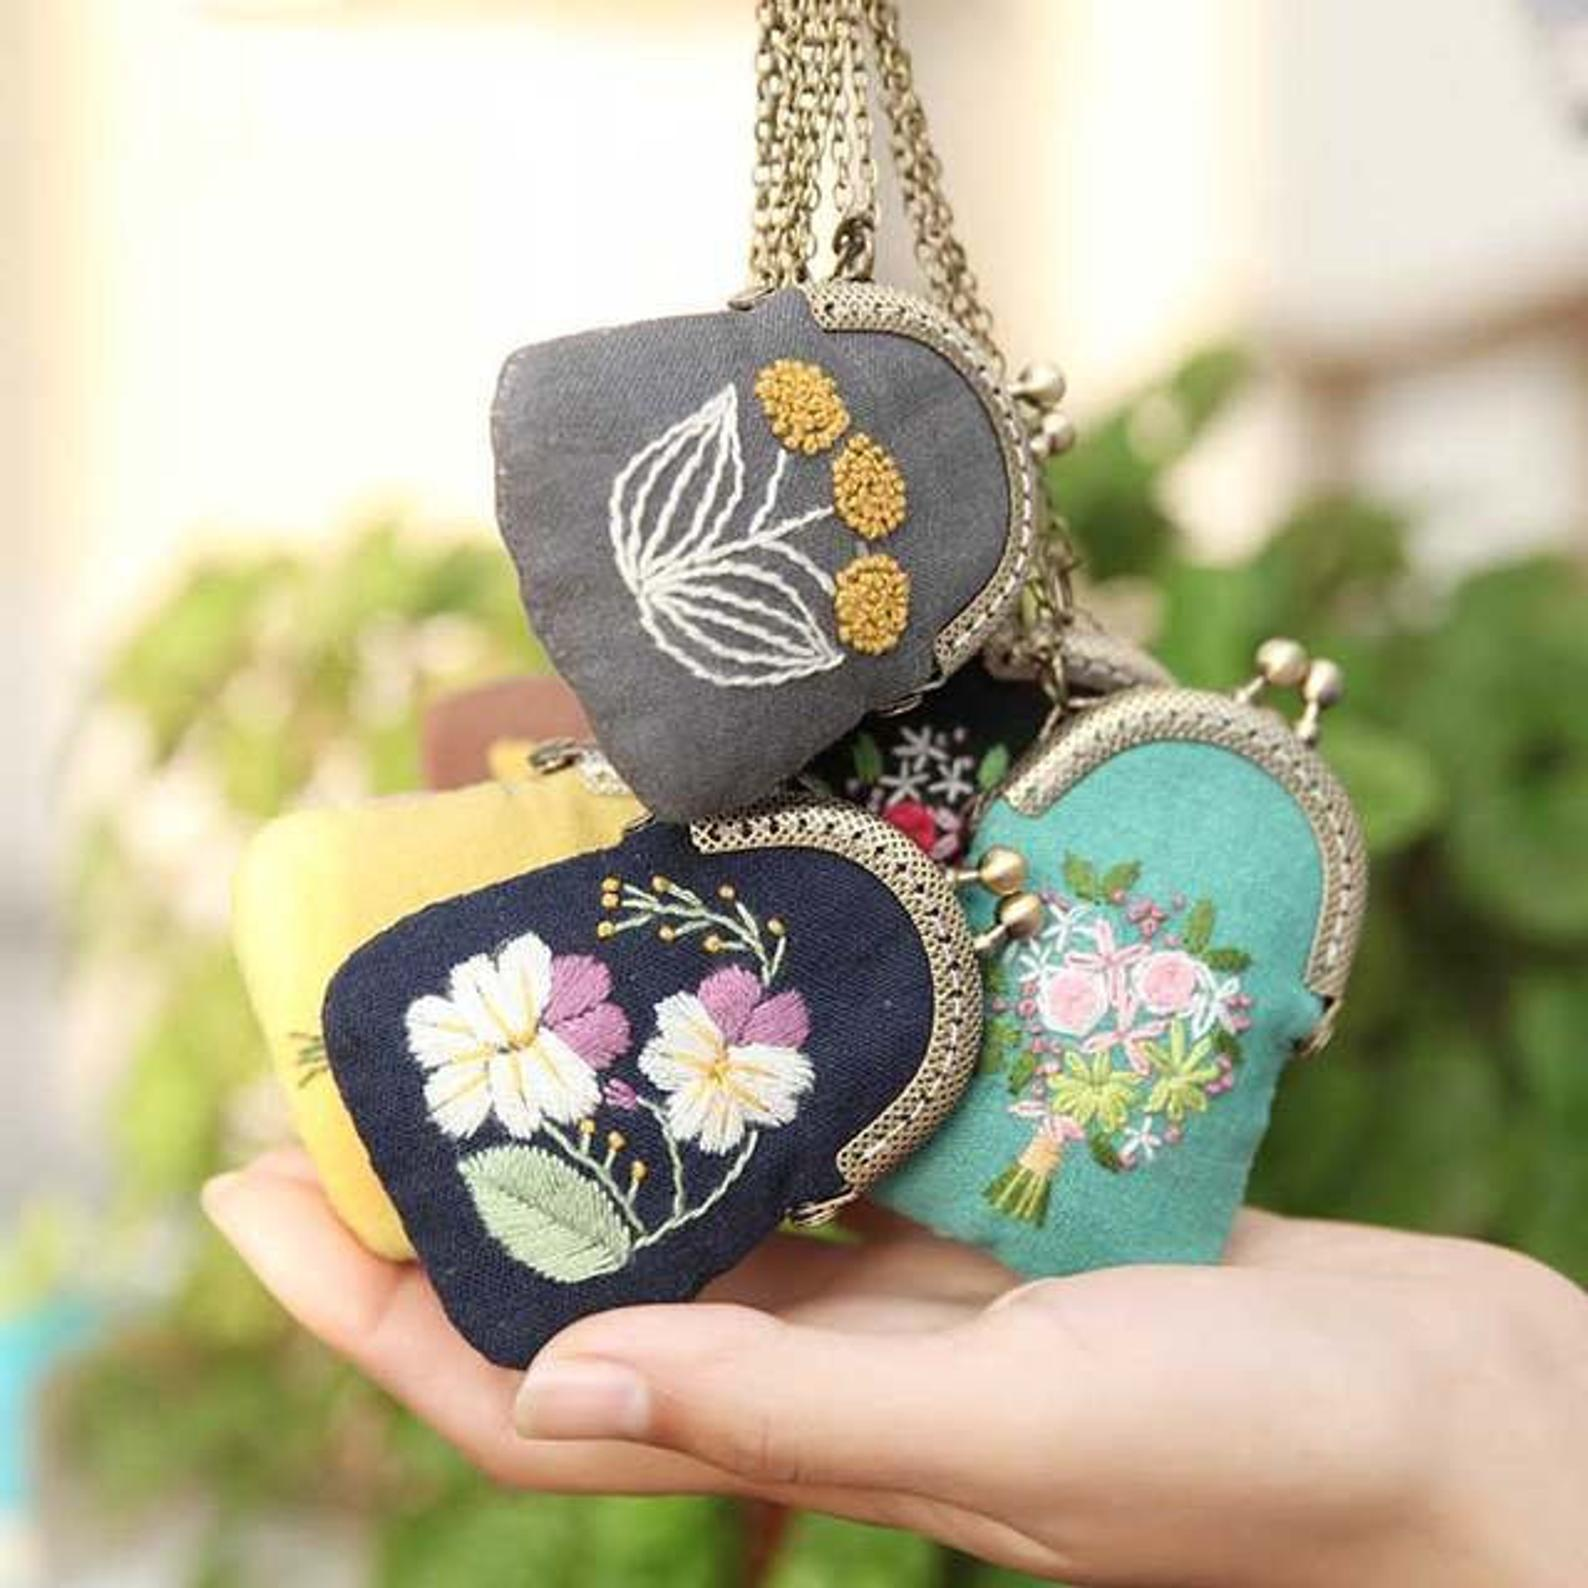 Embroidered Flower Purse DIY kit